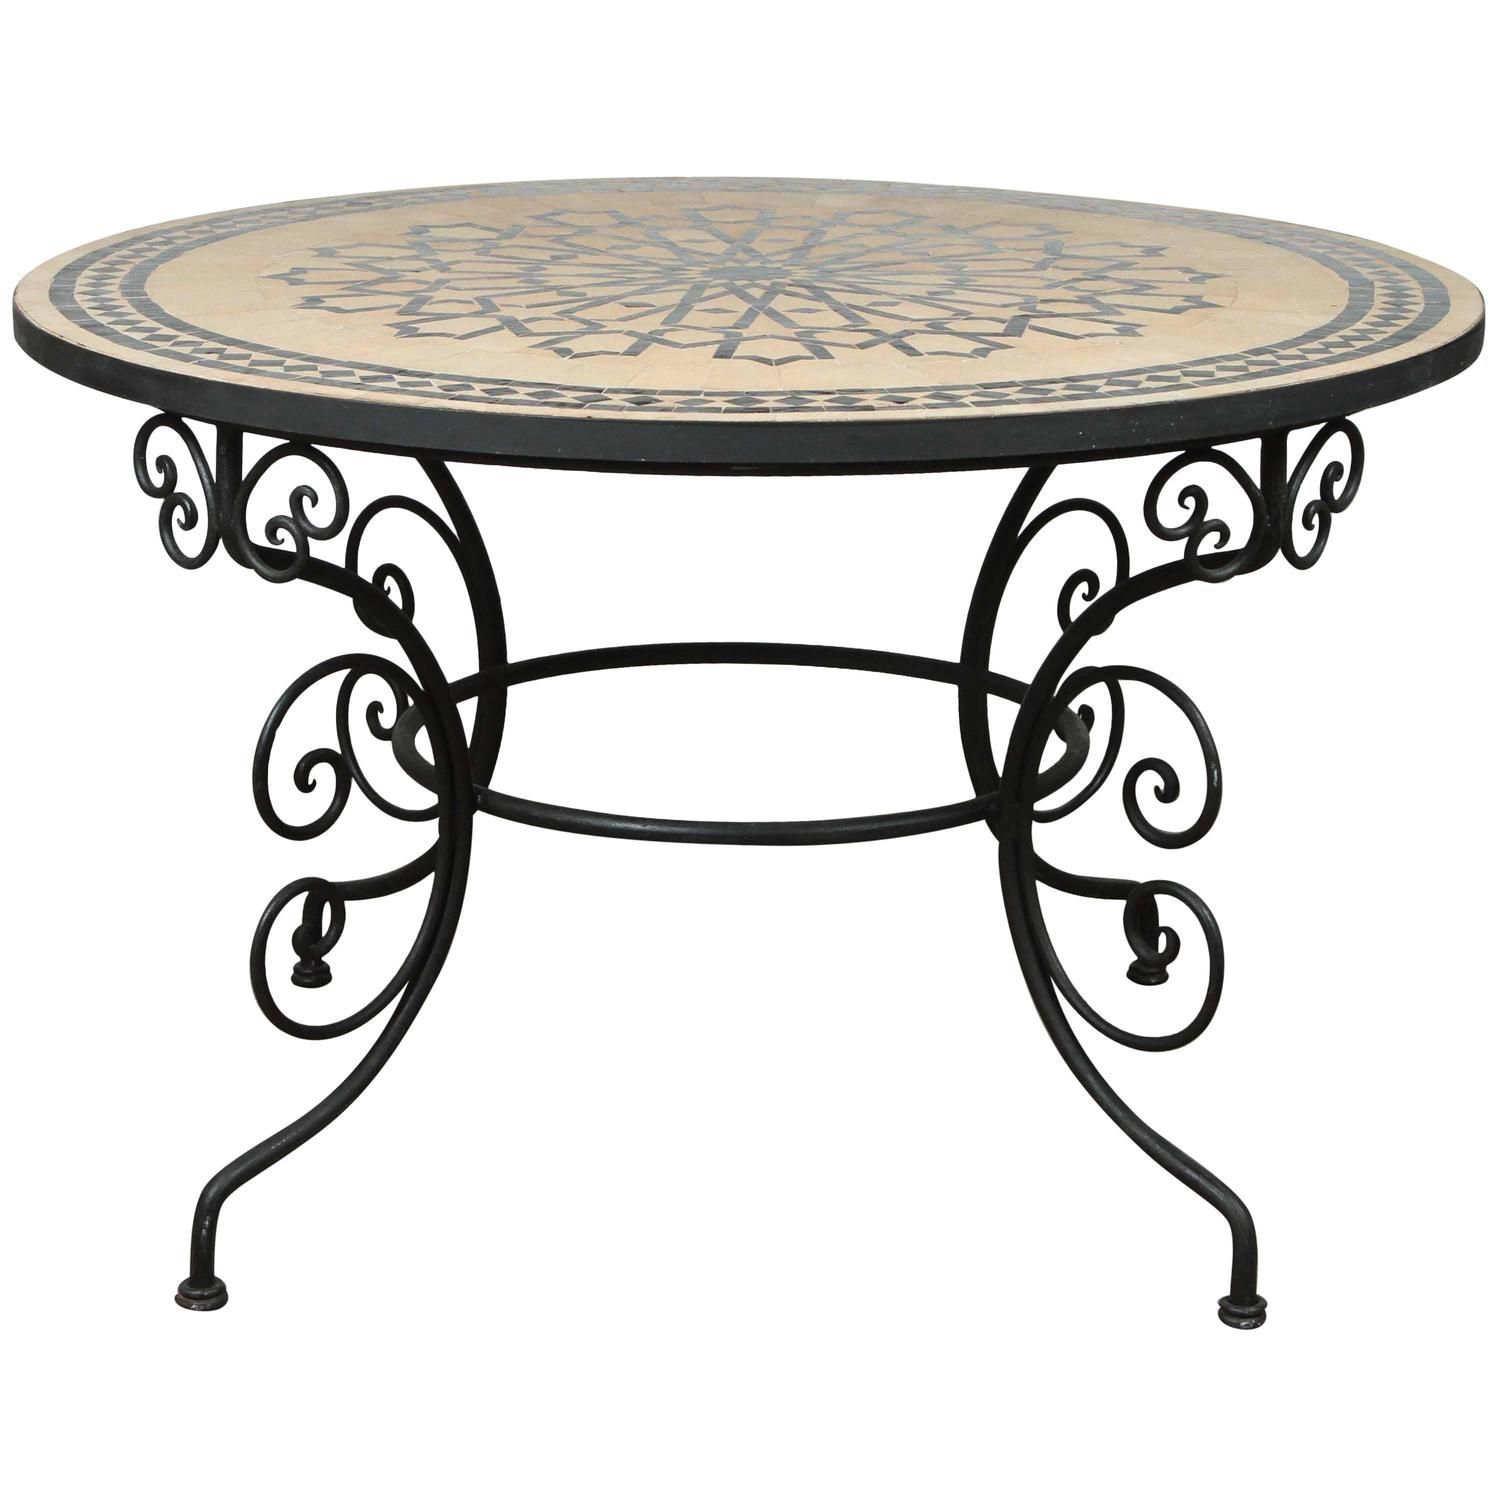 Moroccan Outdoor Round Mosaic Tile Dining Table on Iron ... on Outdoor Living Iron Mosaic id=67433